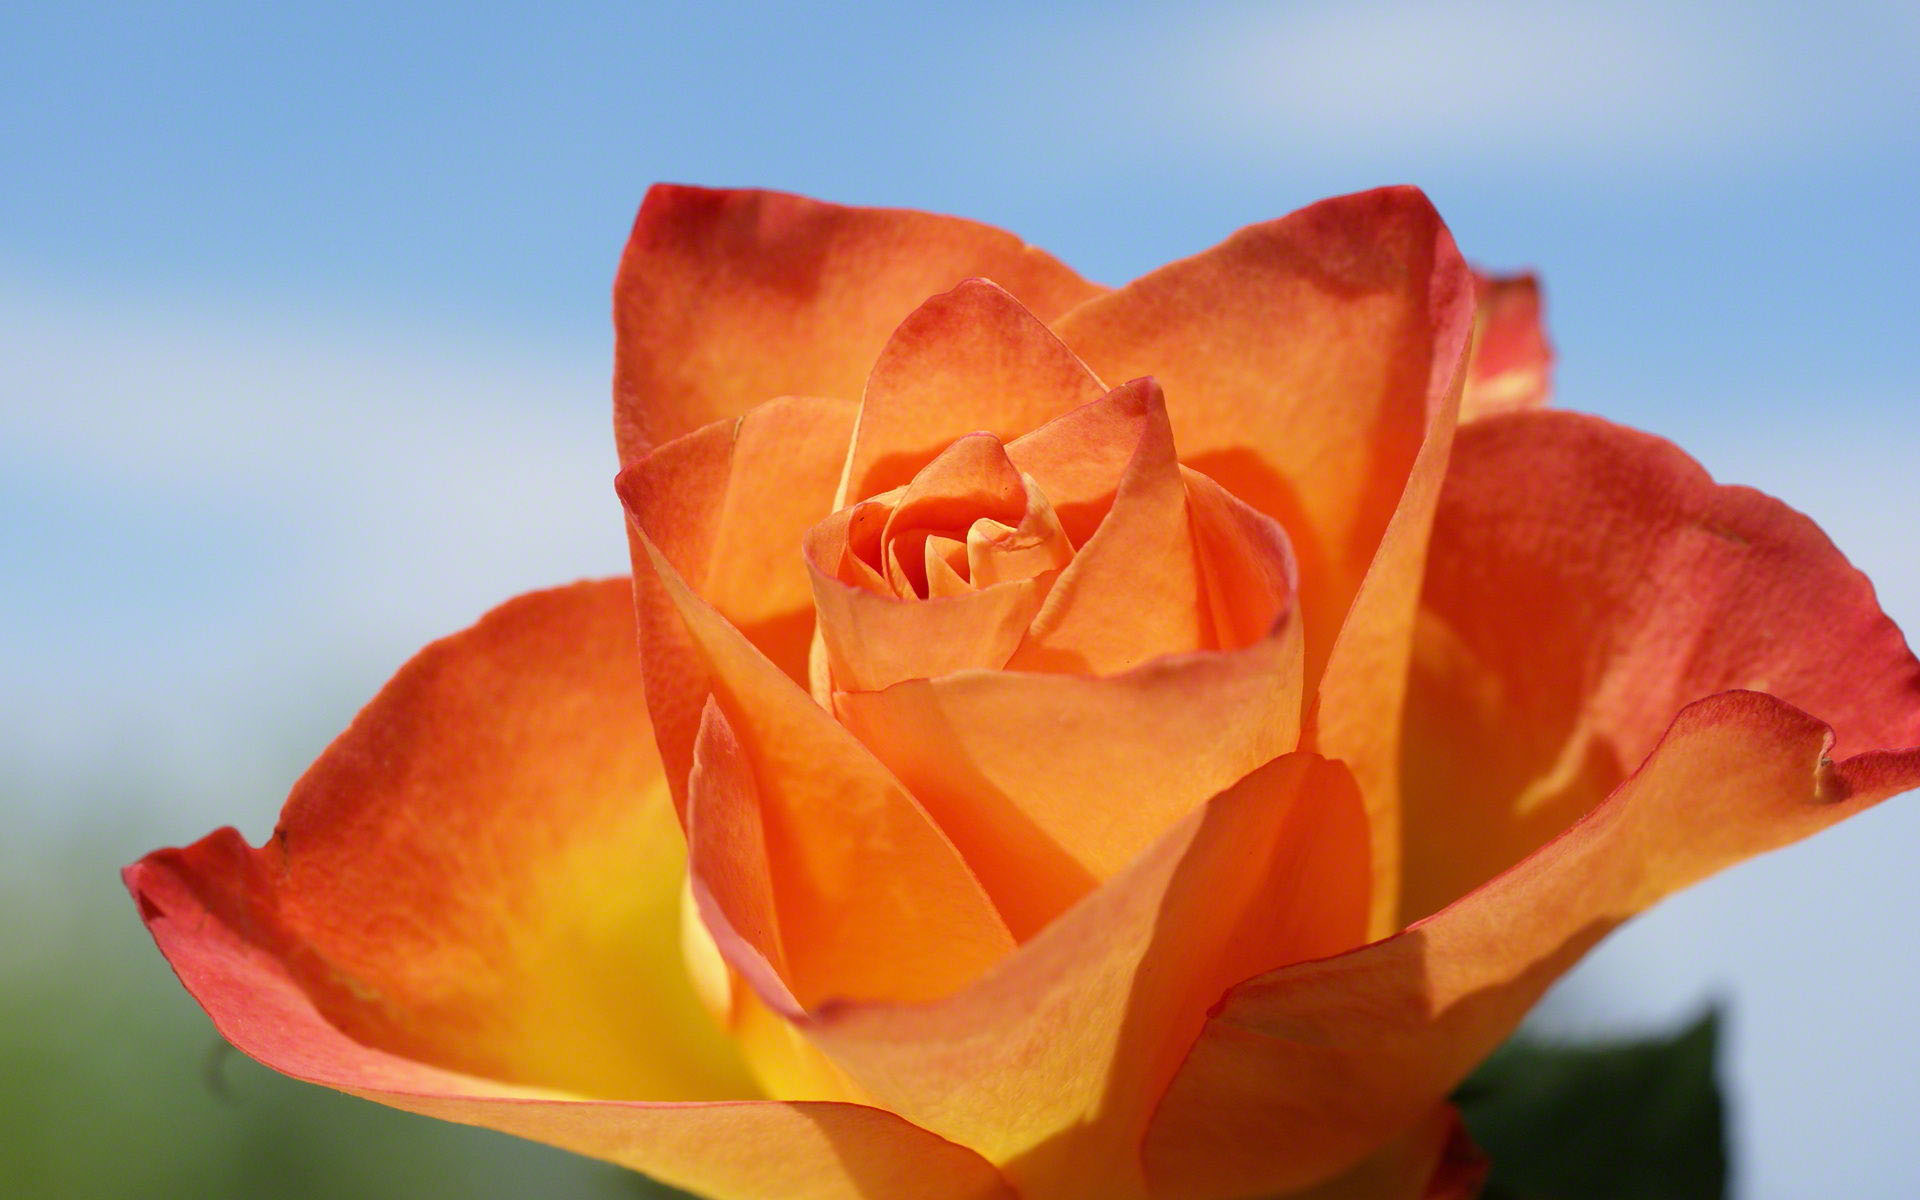 http://www.fabiovisentin.com/photography/photo/12/orange-roses-02739.jpg